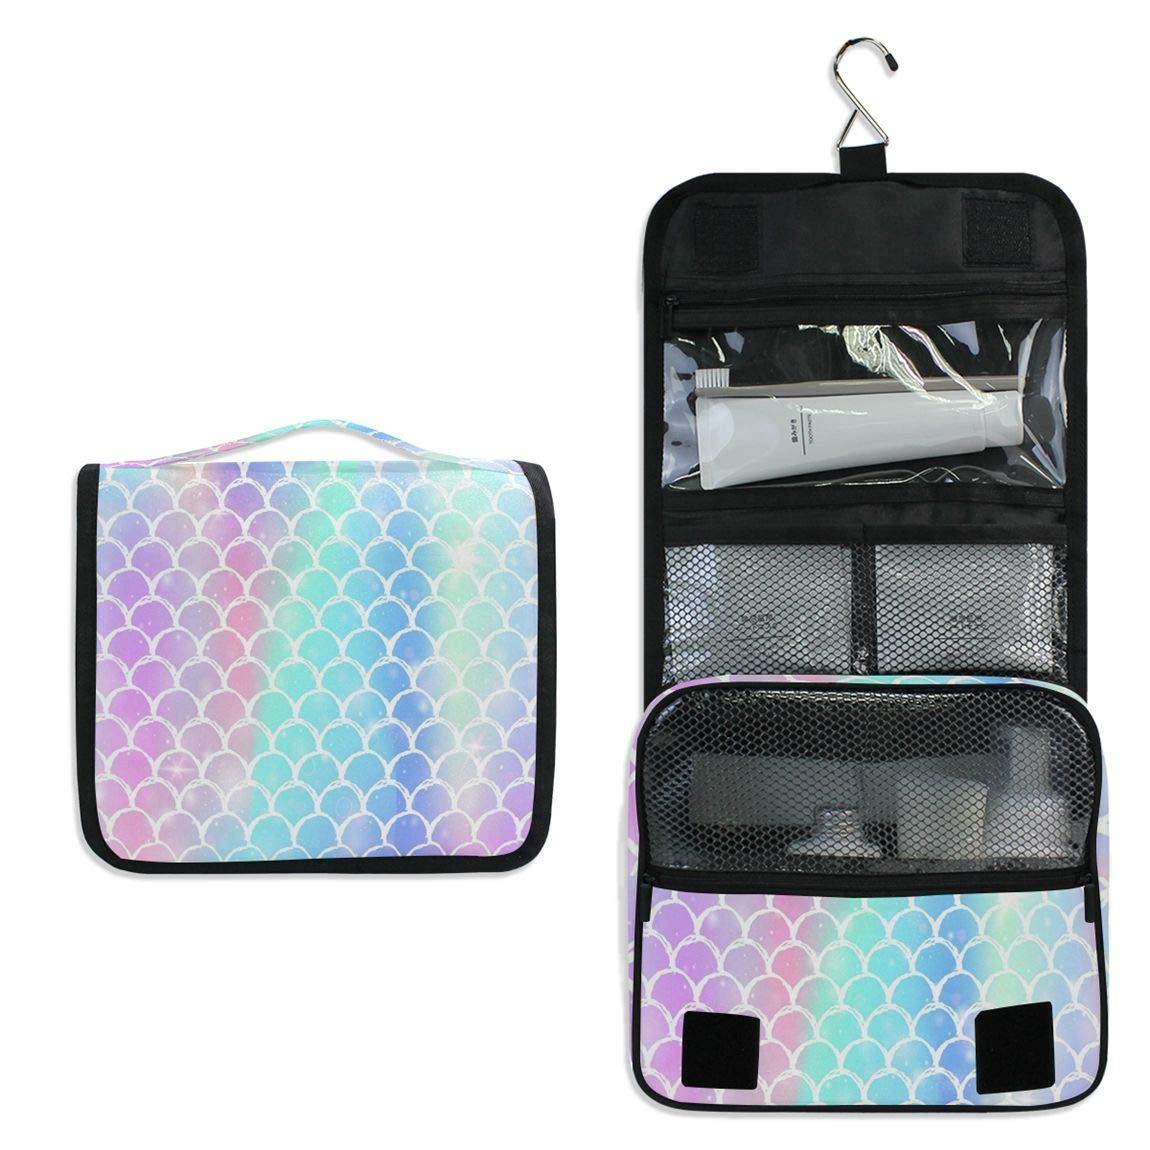 Mermaid Scale Rainbow Color Women Travel Cosmetic Bag Hanging Toiletry Wash bag Unicorn Galaxy Magic Fish Portable Makeup Organizer Brush Case Storage Bag with Hook for Bathroom Toilet